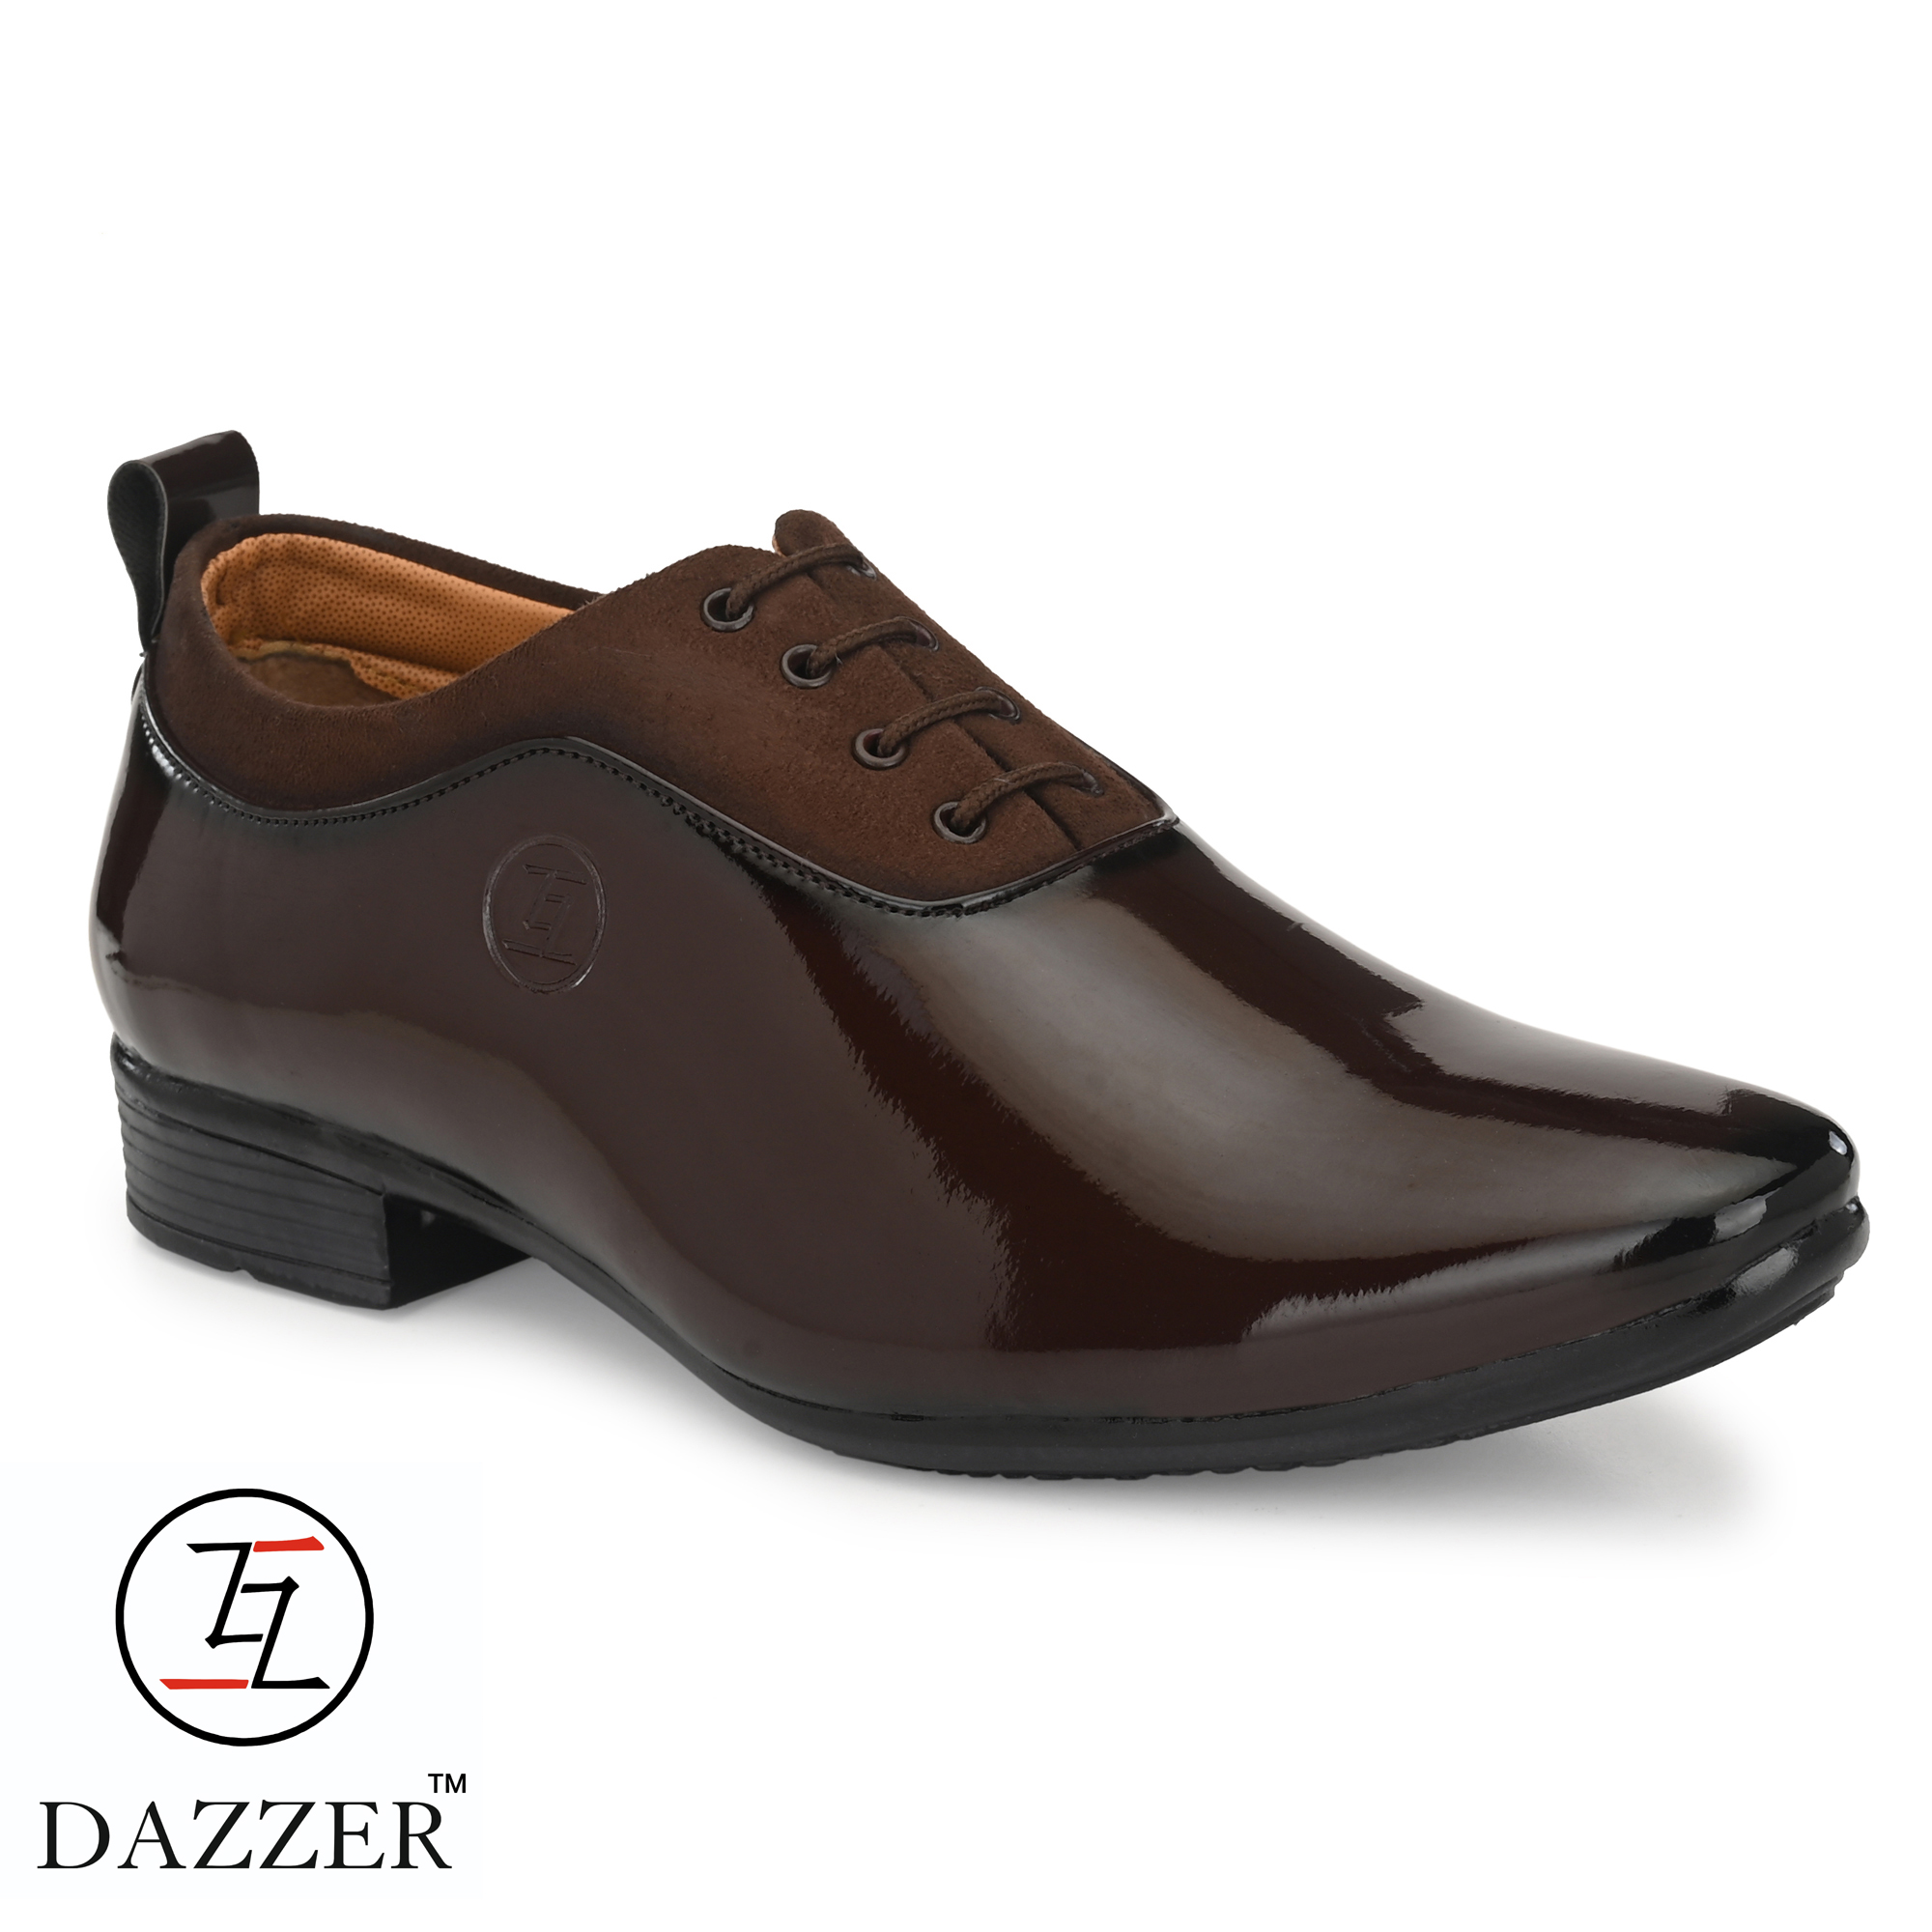 Dazzer 641 Lace Up Patent Formal Shoes For Men 641Brown (Brown, 6-10, 8 PAIR)